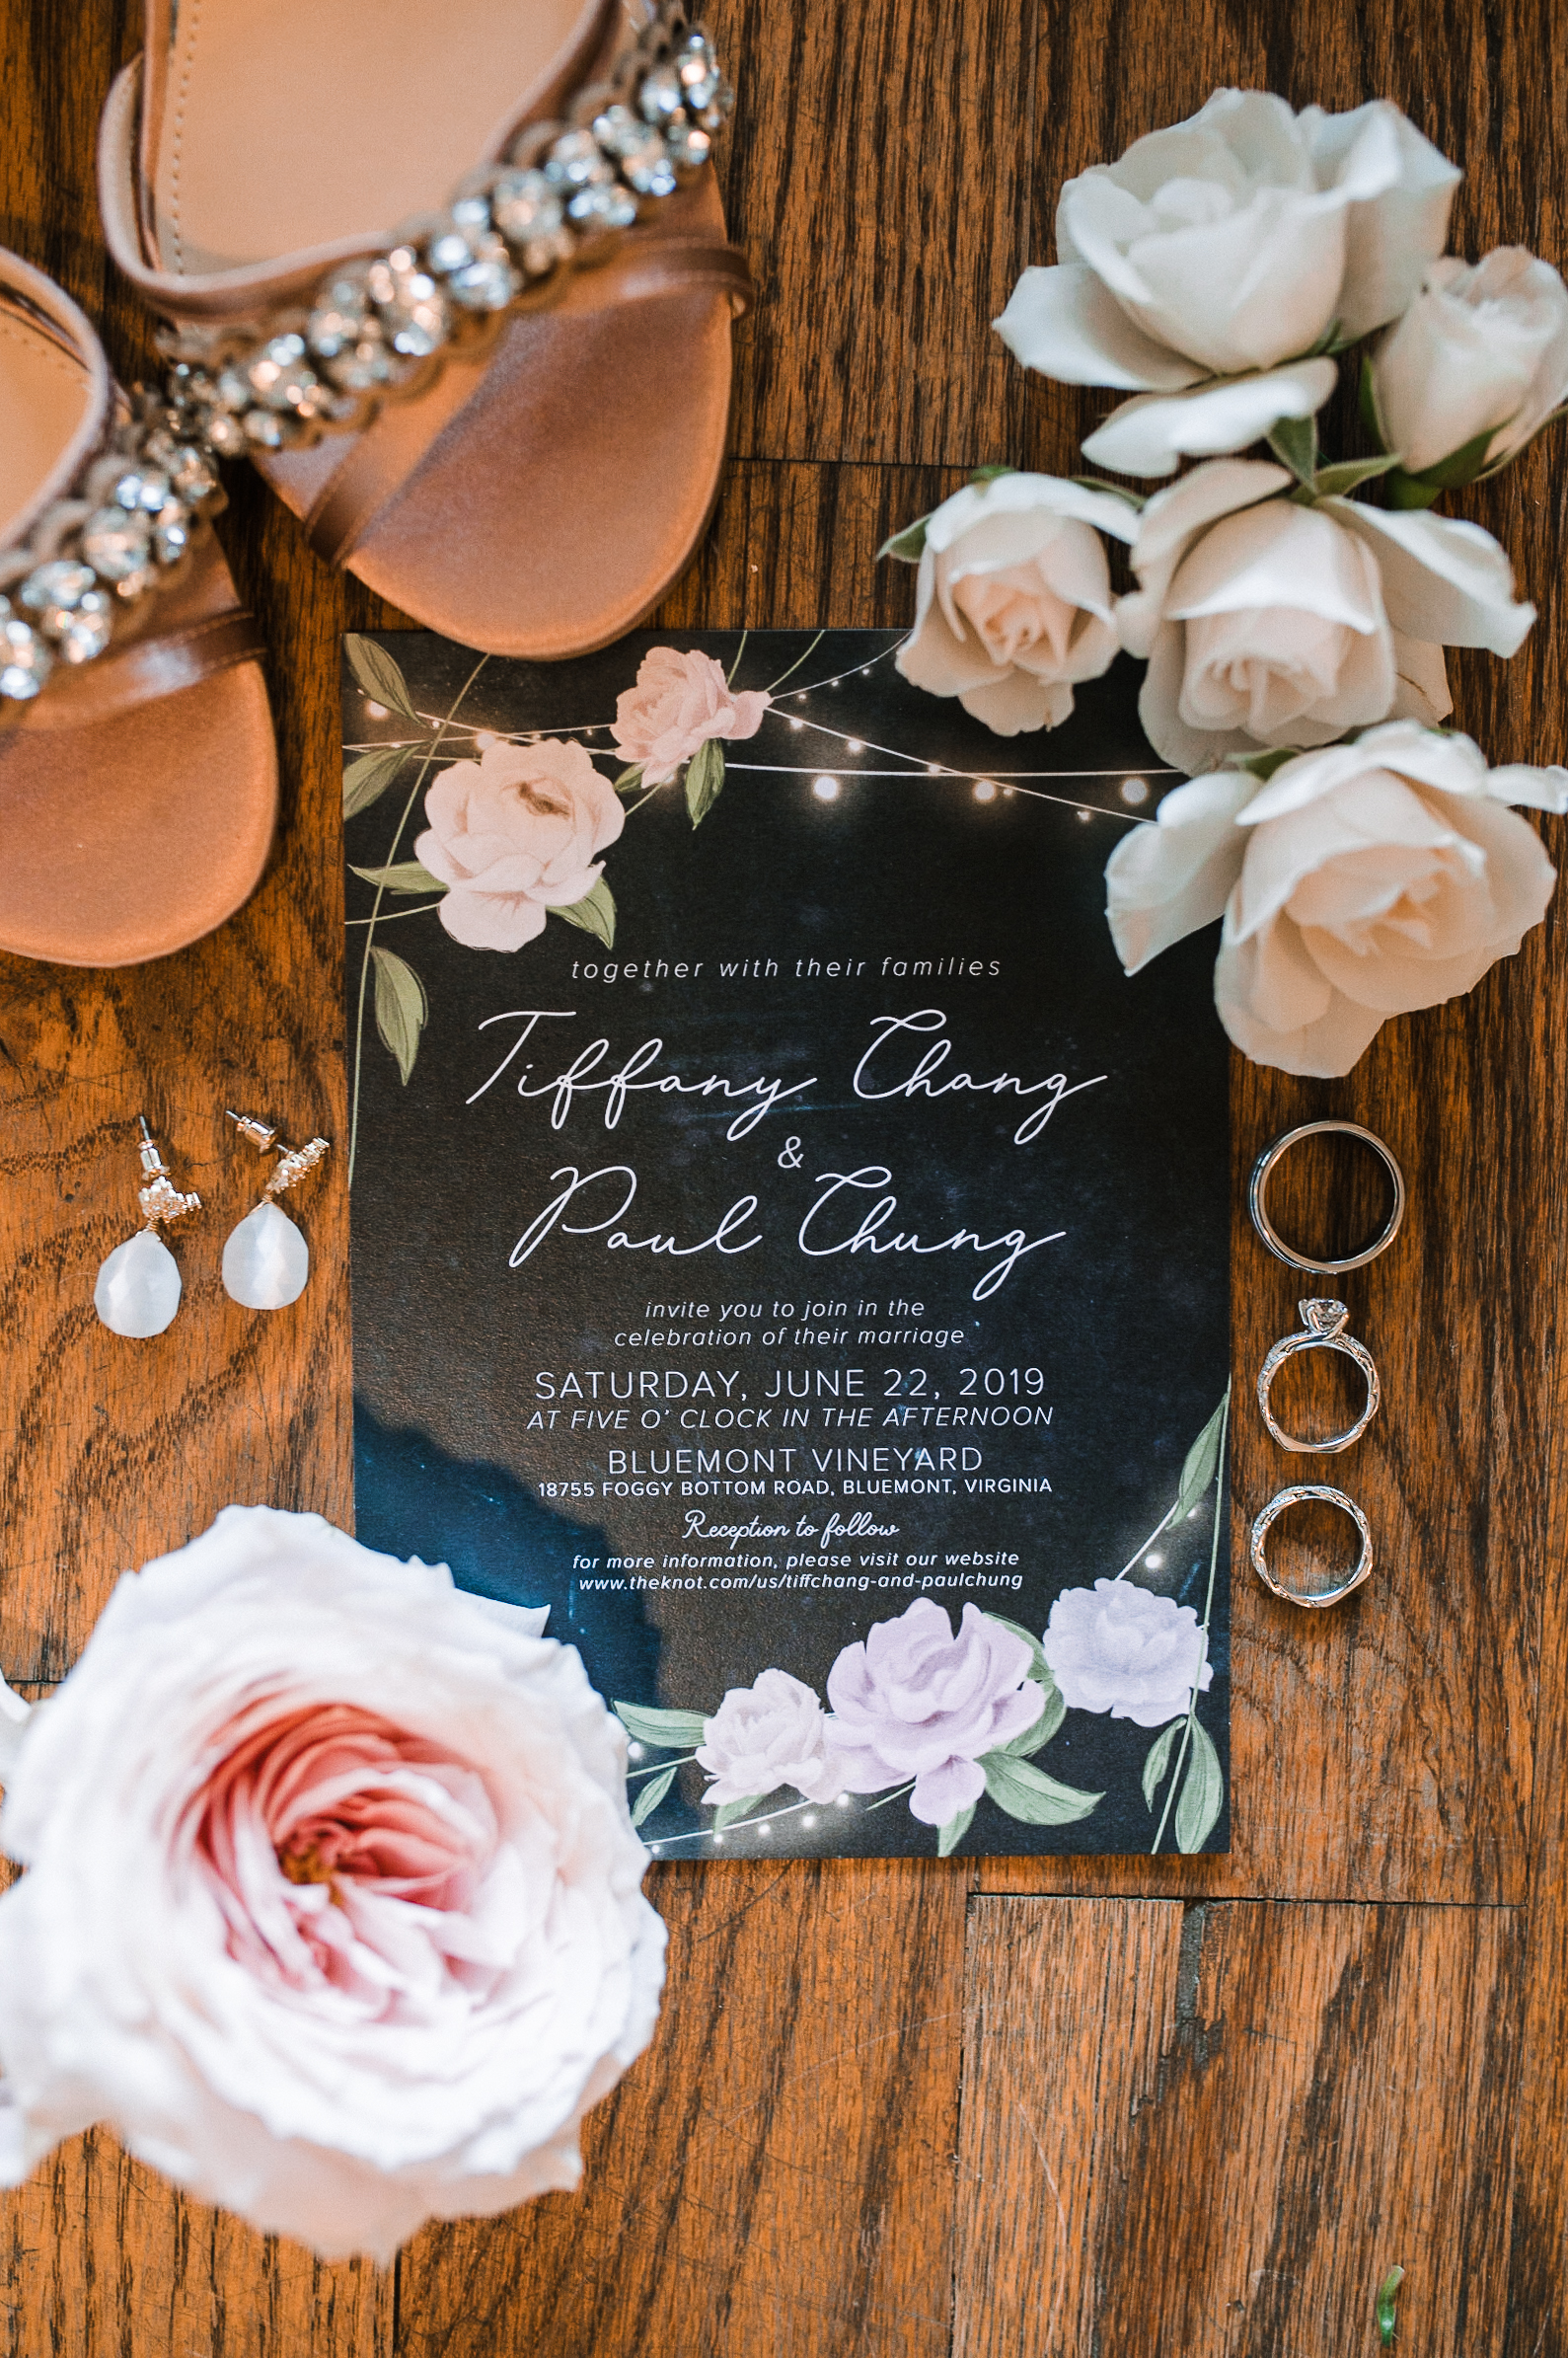 Detail shot of wedding stationery at Bluemont Vineyard